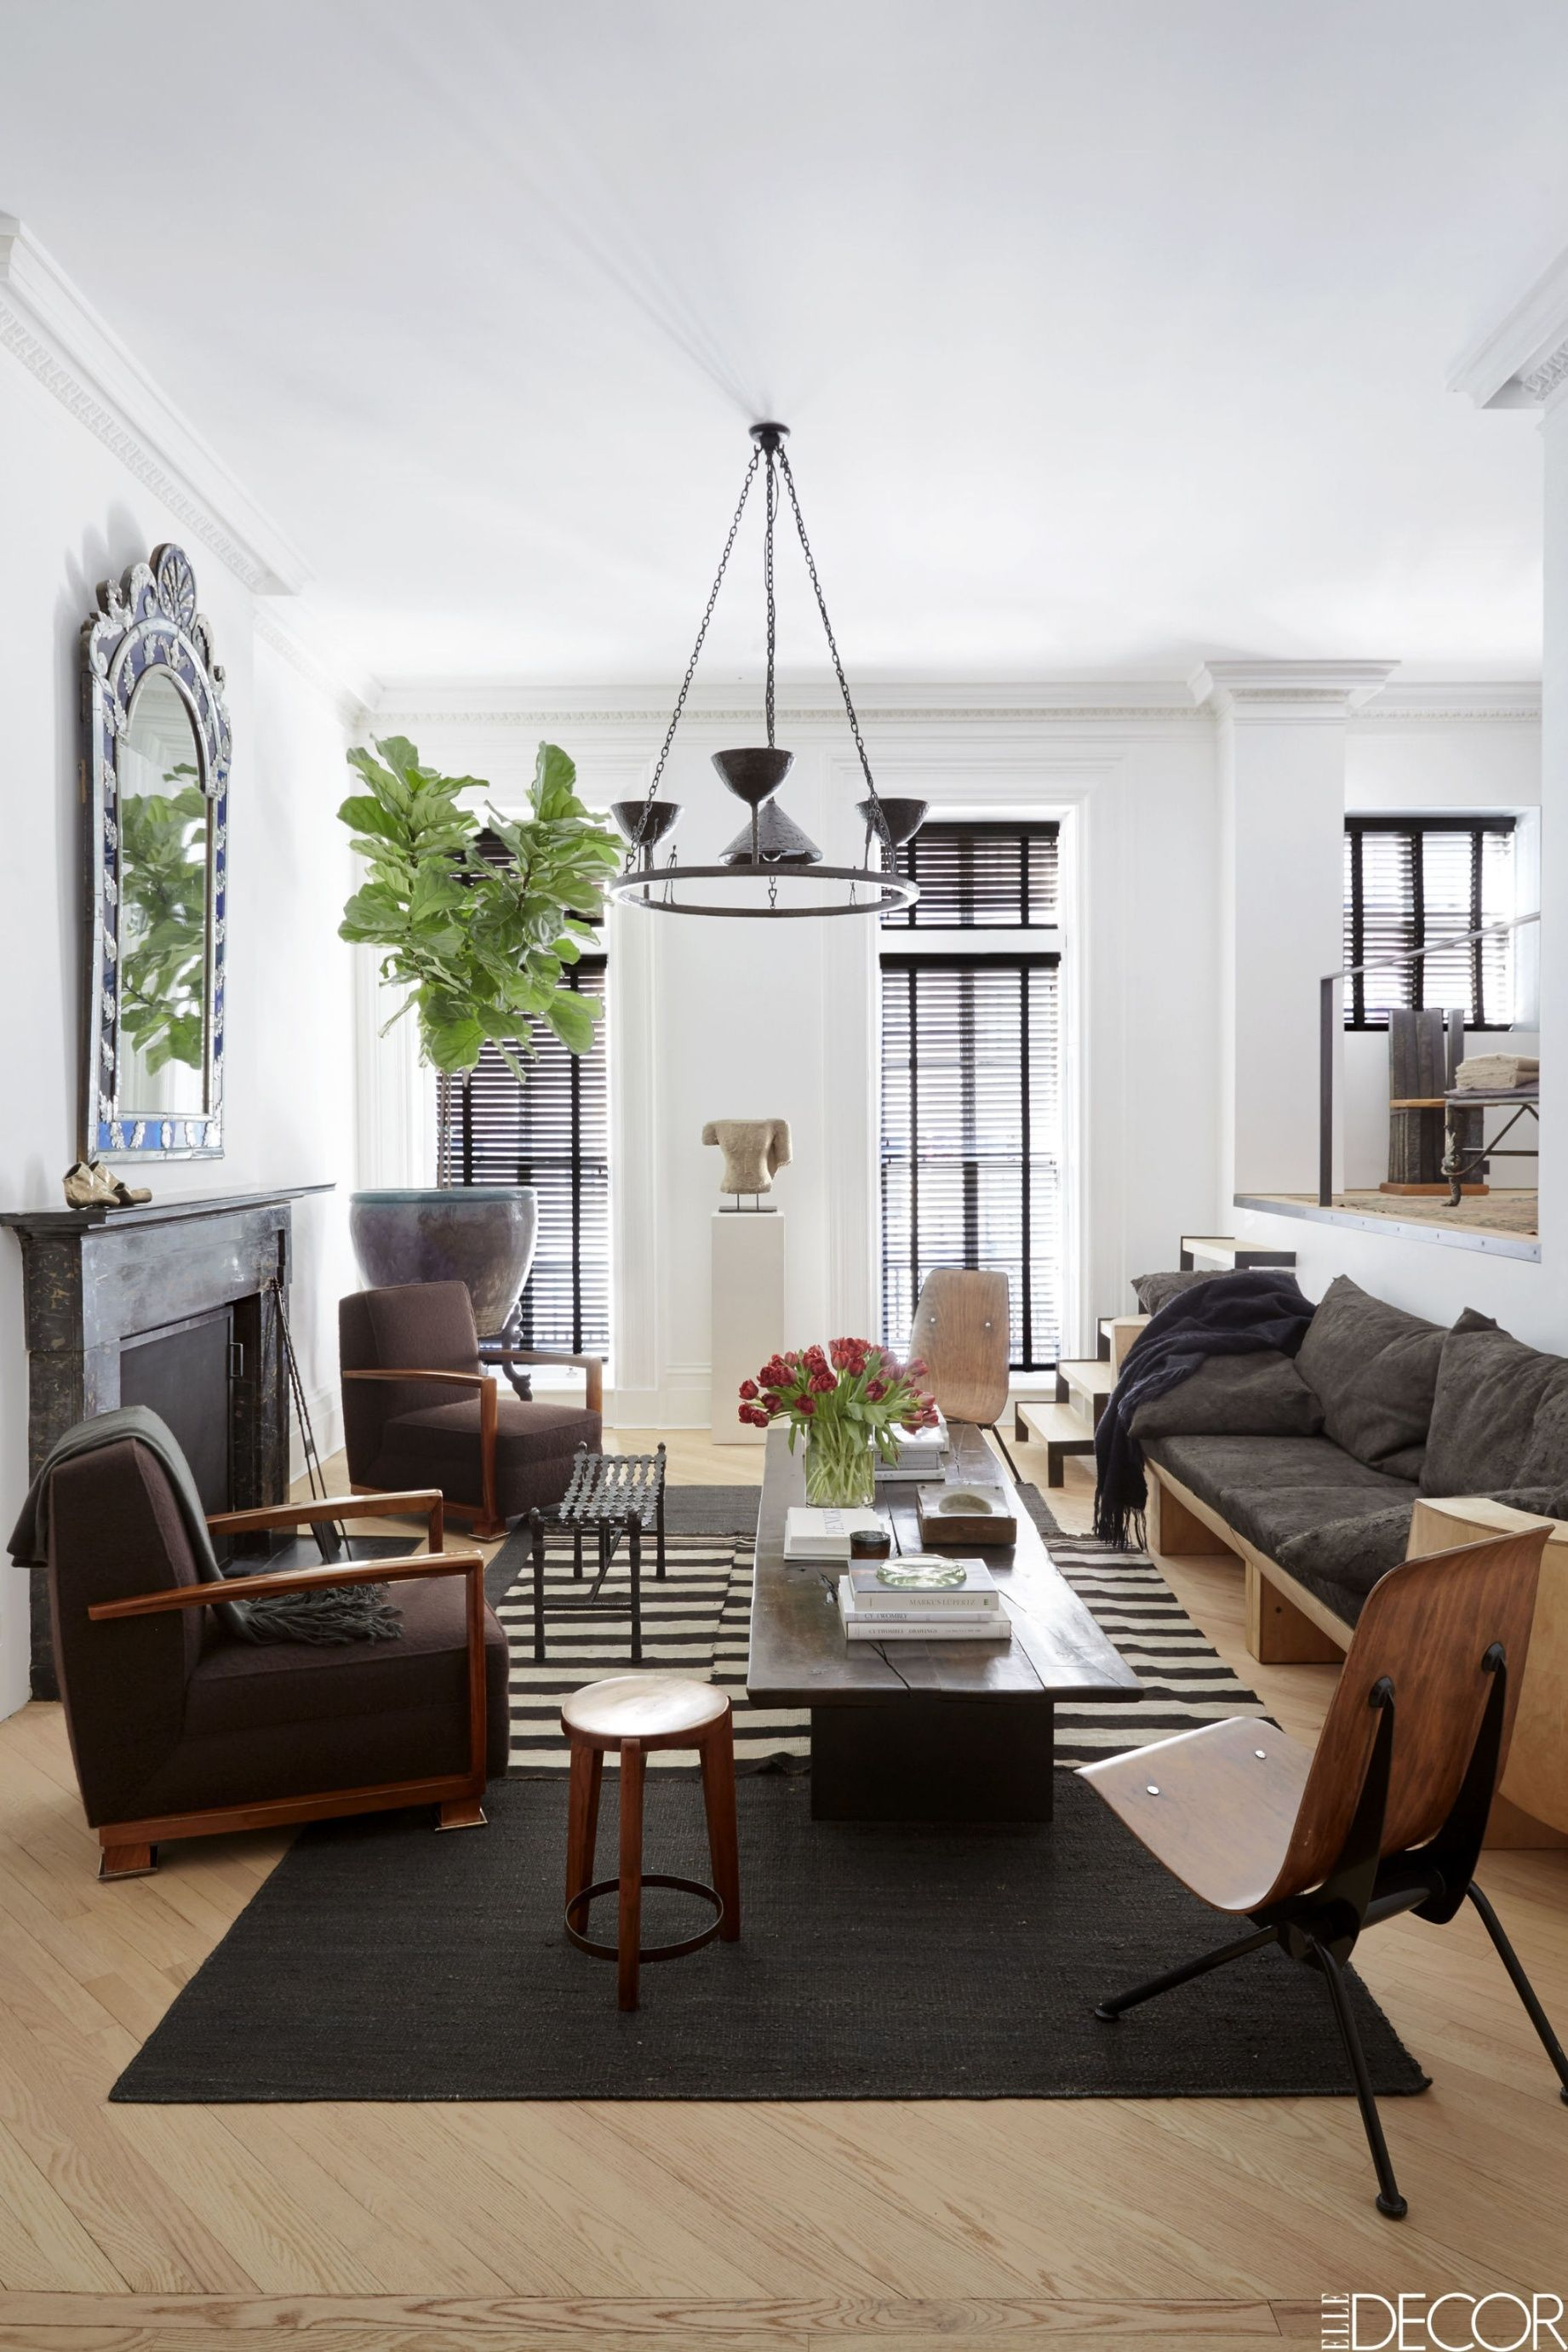 pictures of grey living room furniture simple false ceiling designs for photos 27 best gray rooms ideas how to use paint and decor in